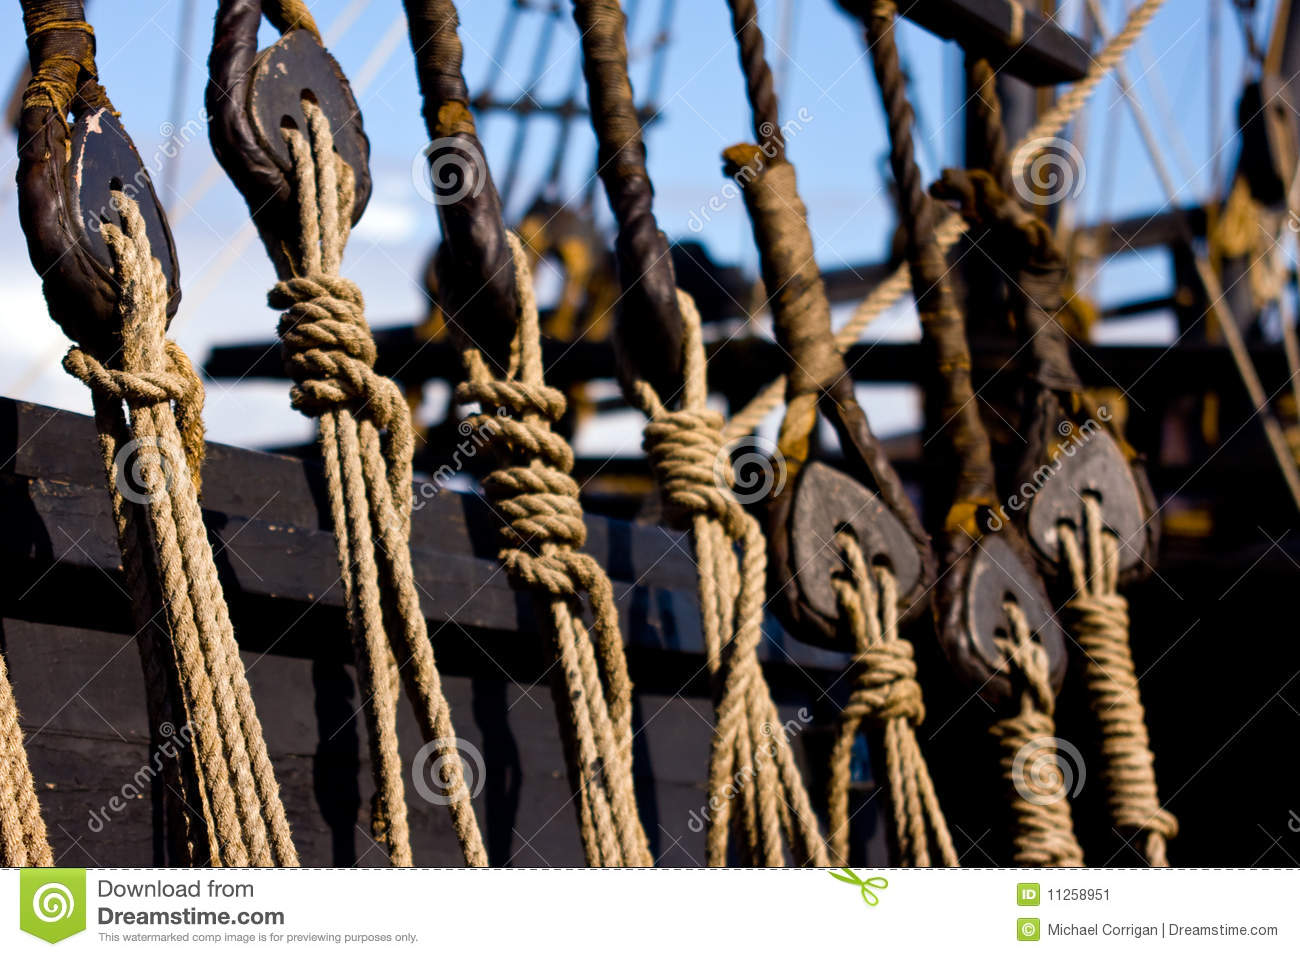 Rope Rigging On A Wooden Boat Stock Image - Image: 11258951